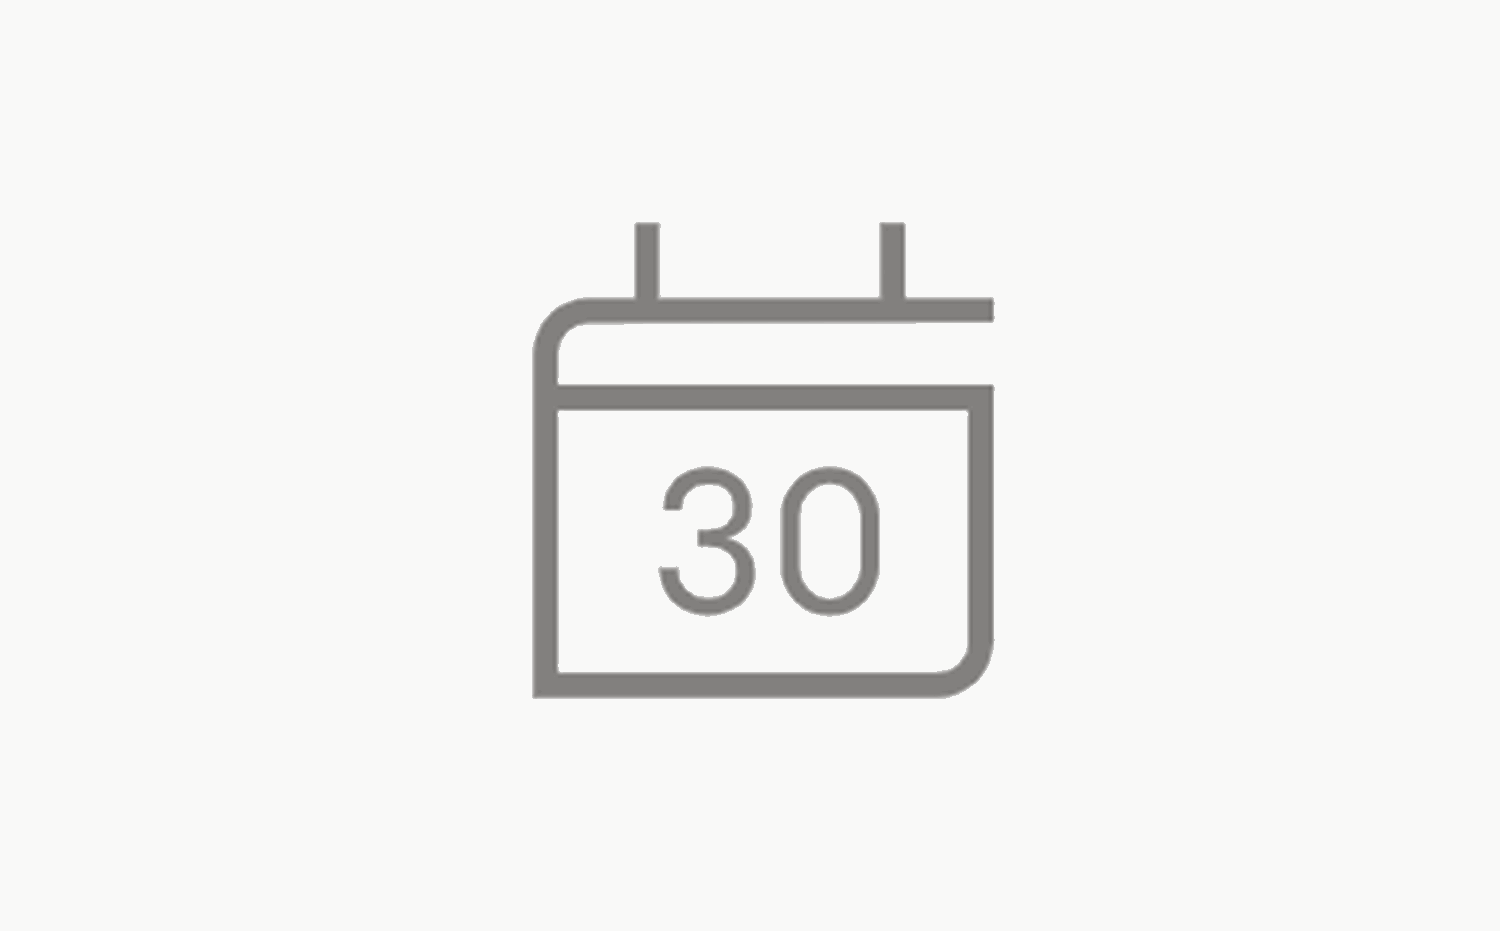 30 Day Exchange